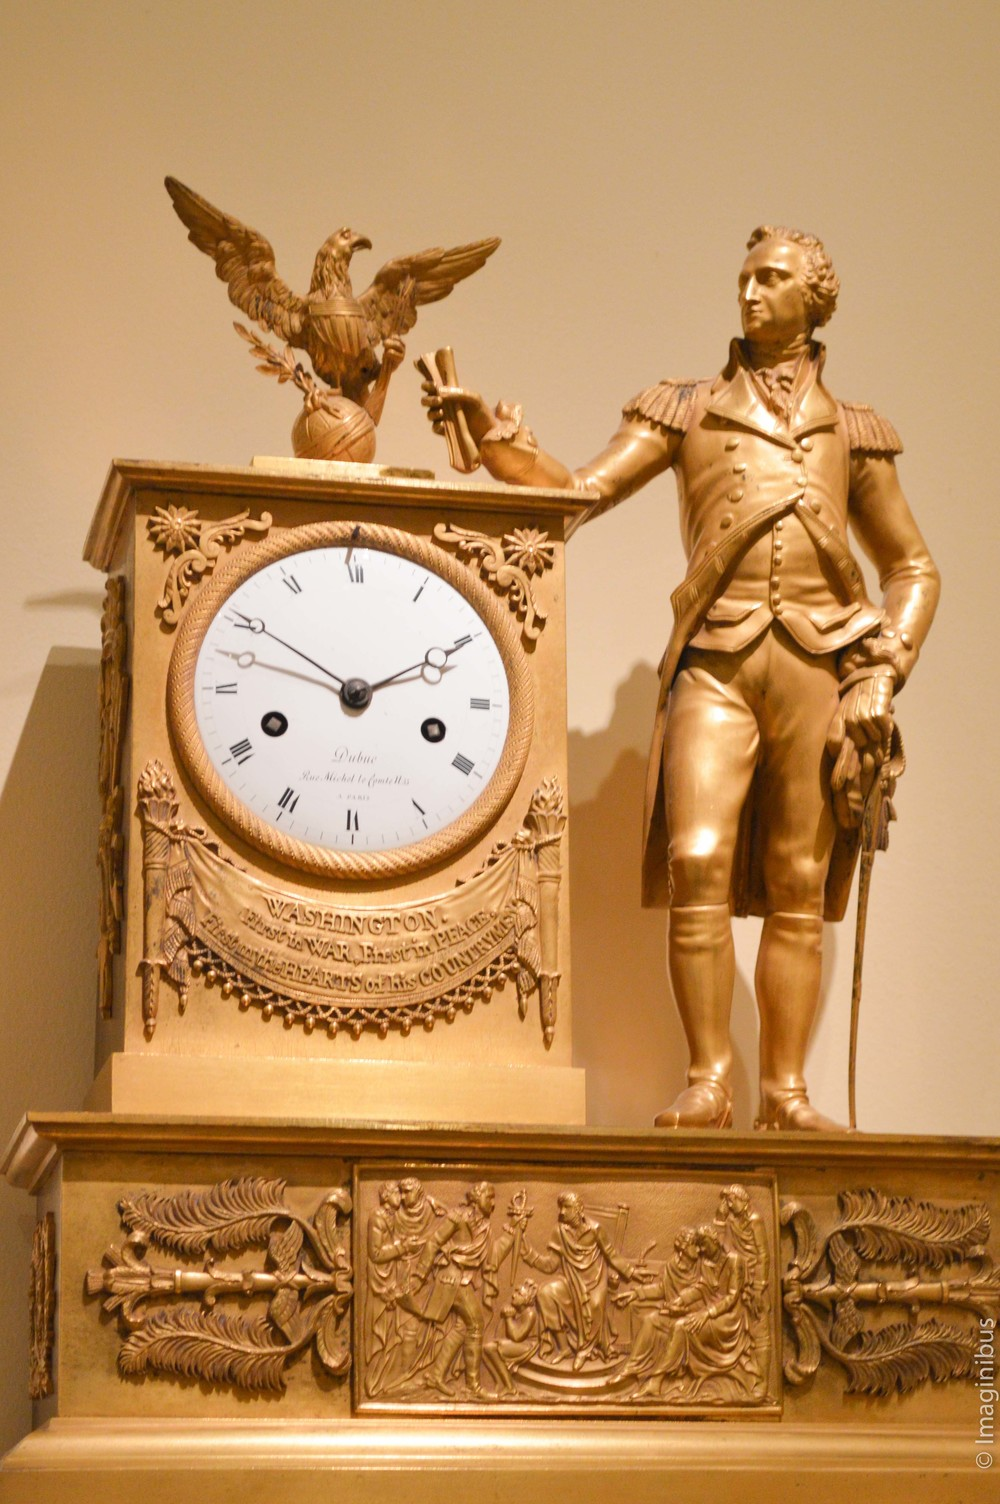 George Washington Clock, Metropolitan Museum of Art